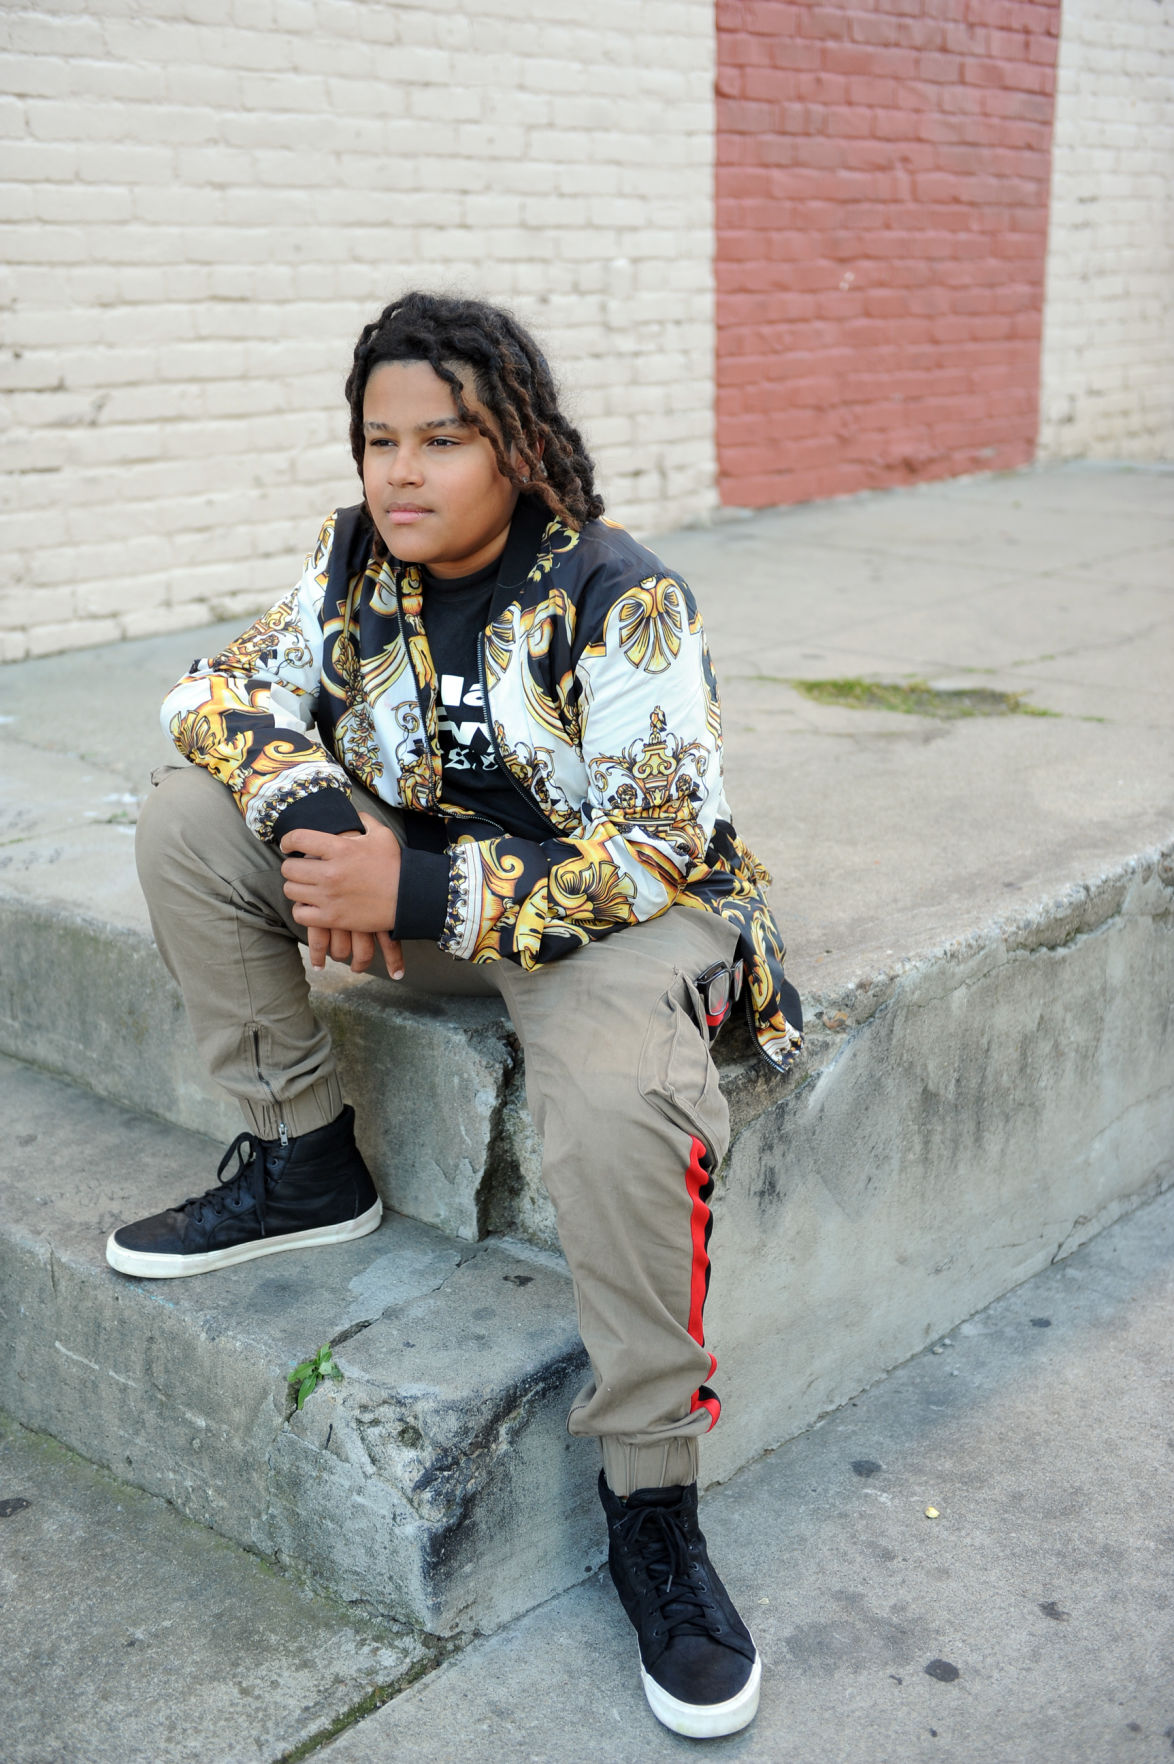 Lodi's budding rap star: 13 year old to launch 2nd album